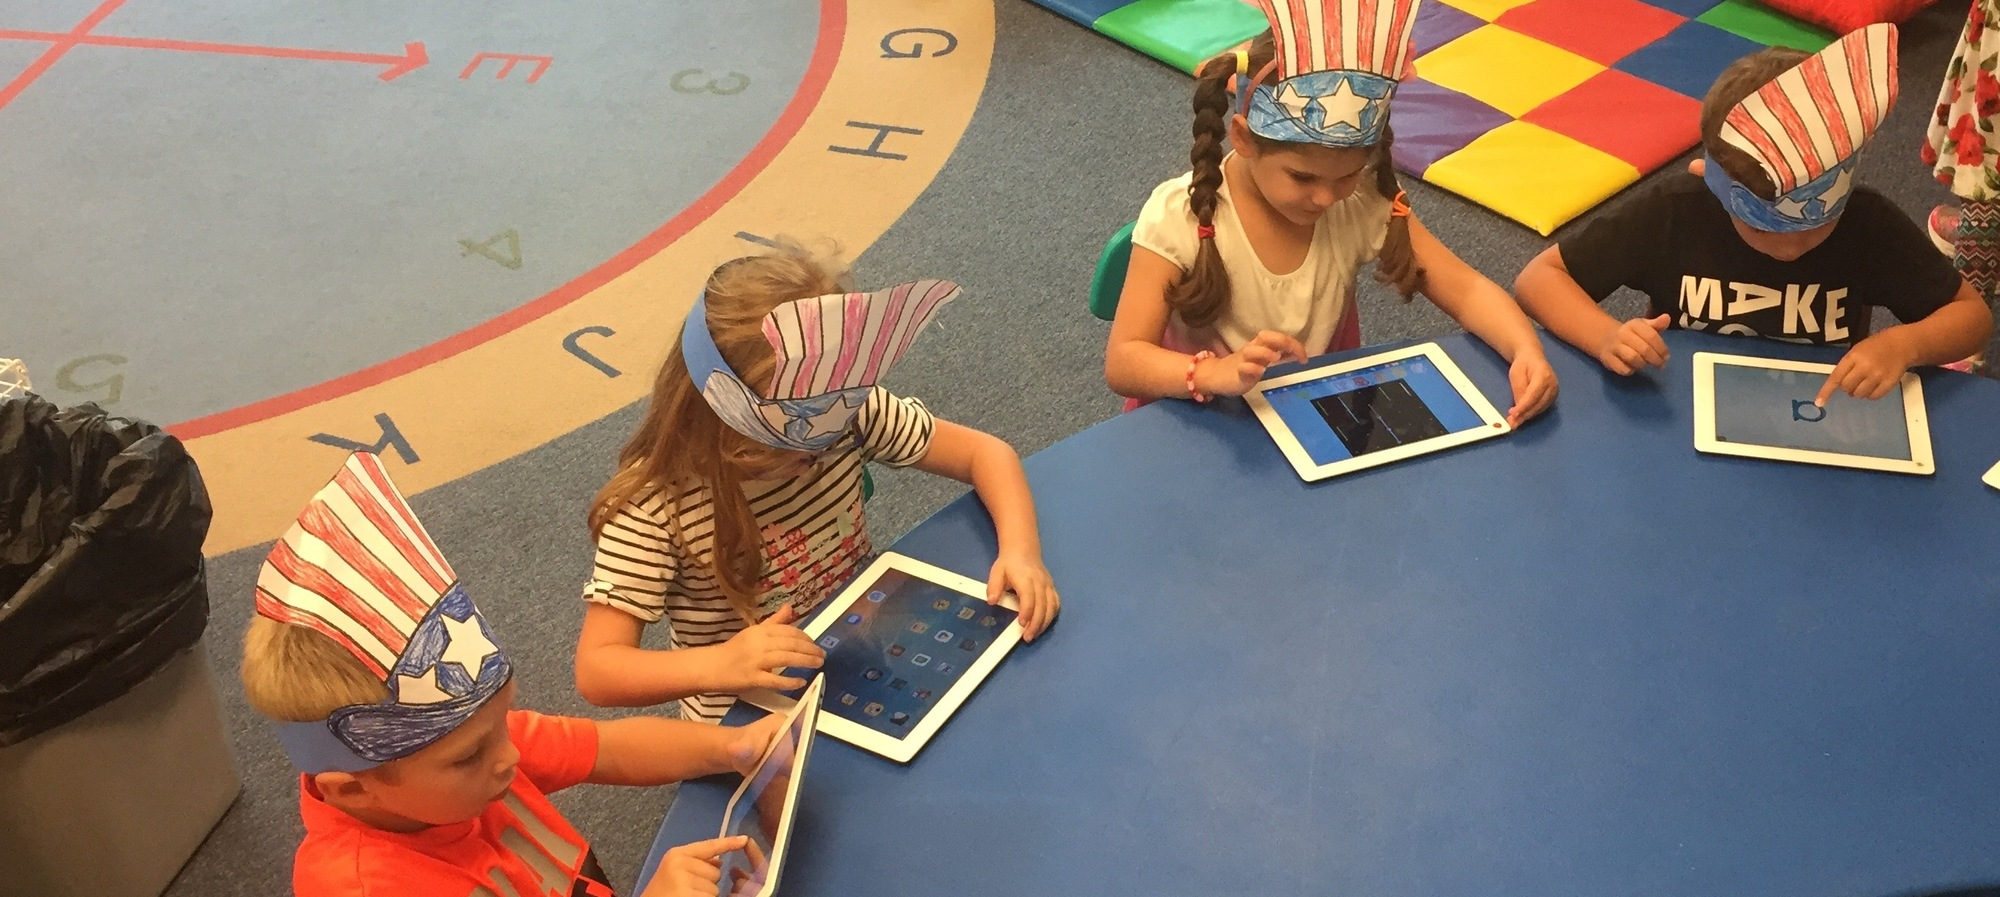 Students working on iPads with hats on that look like flags